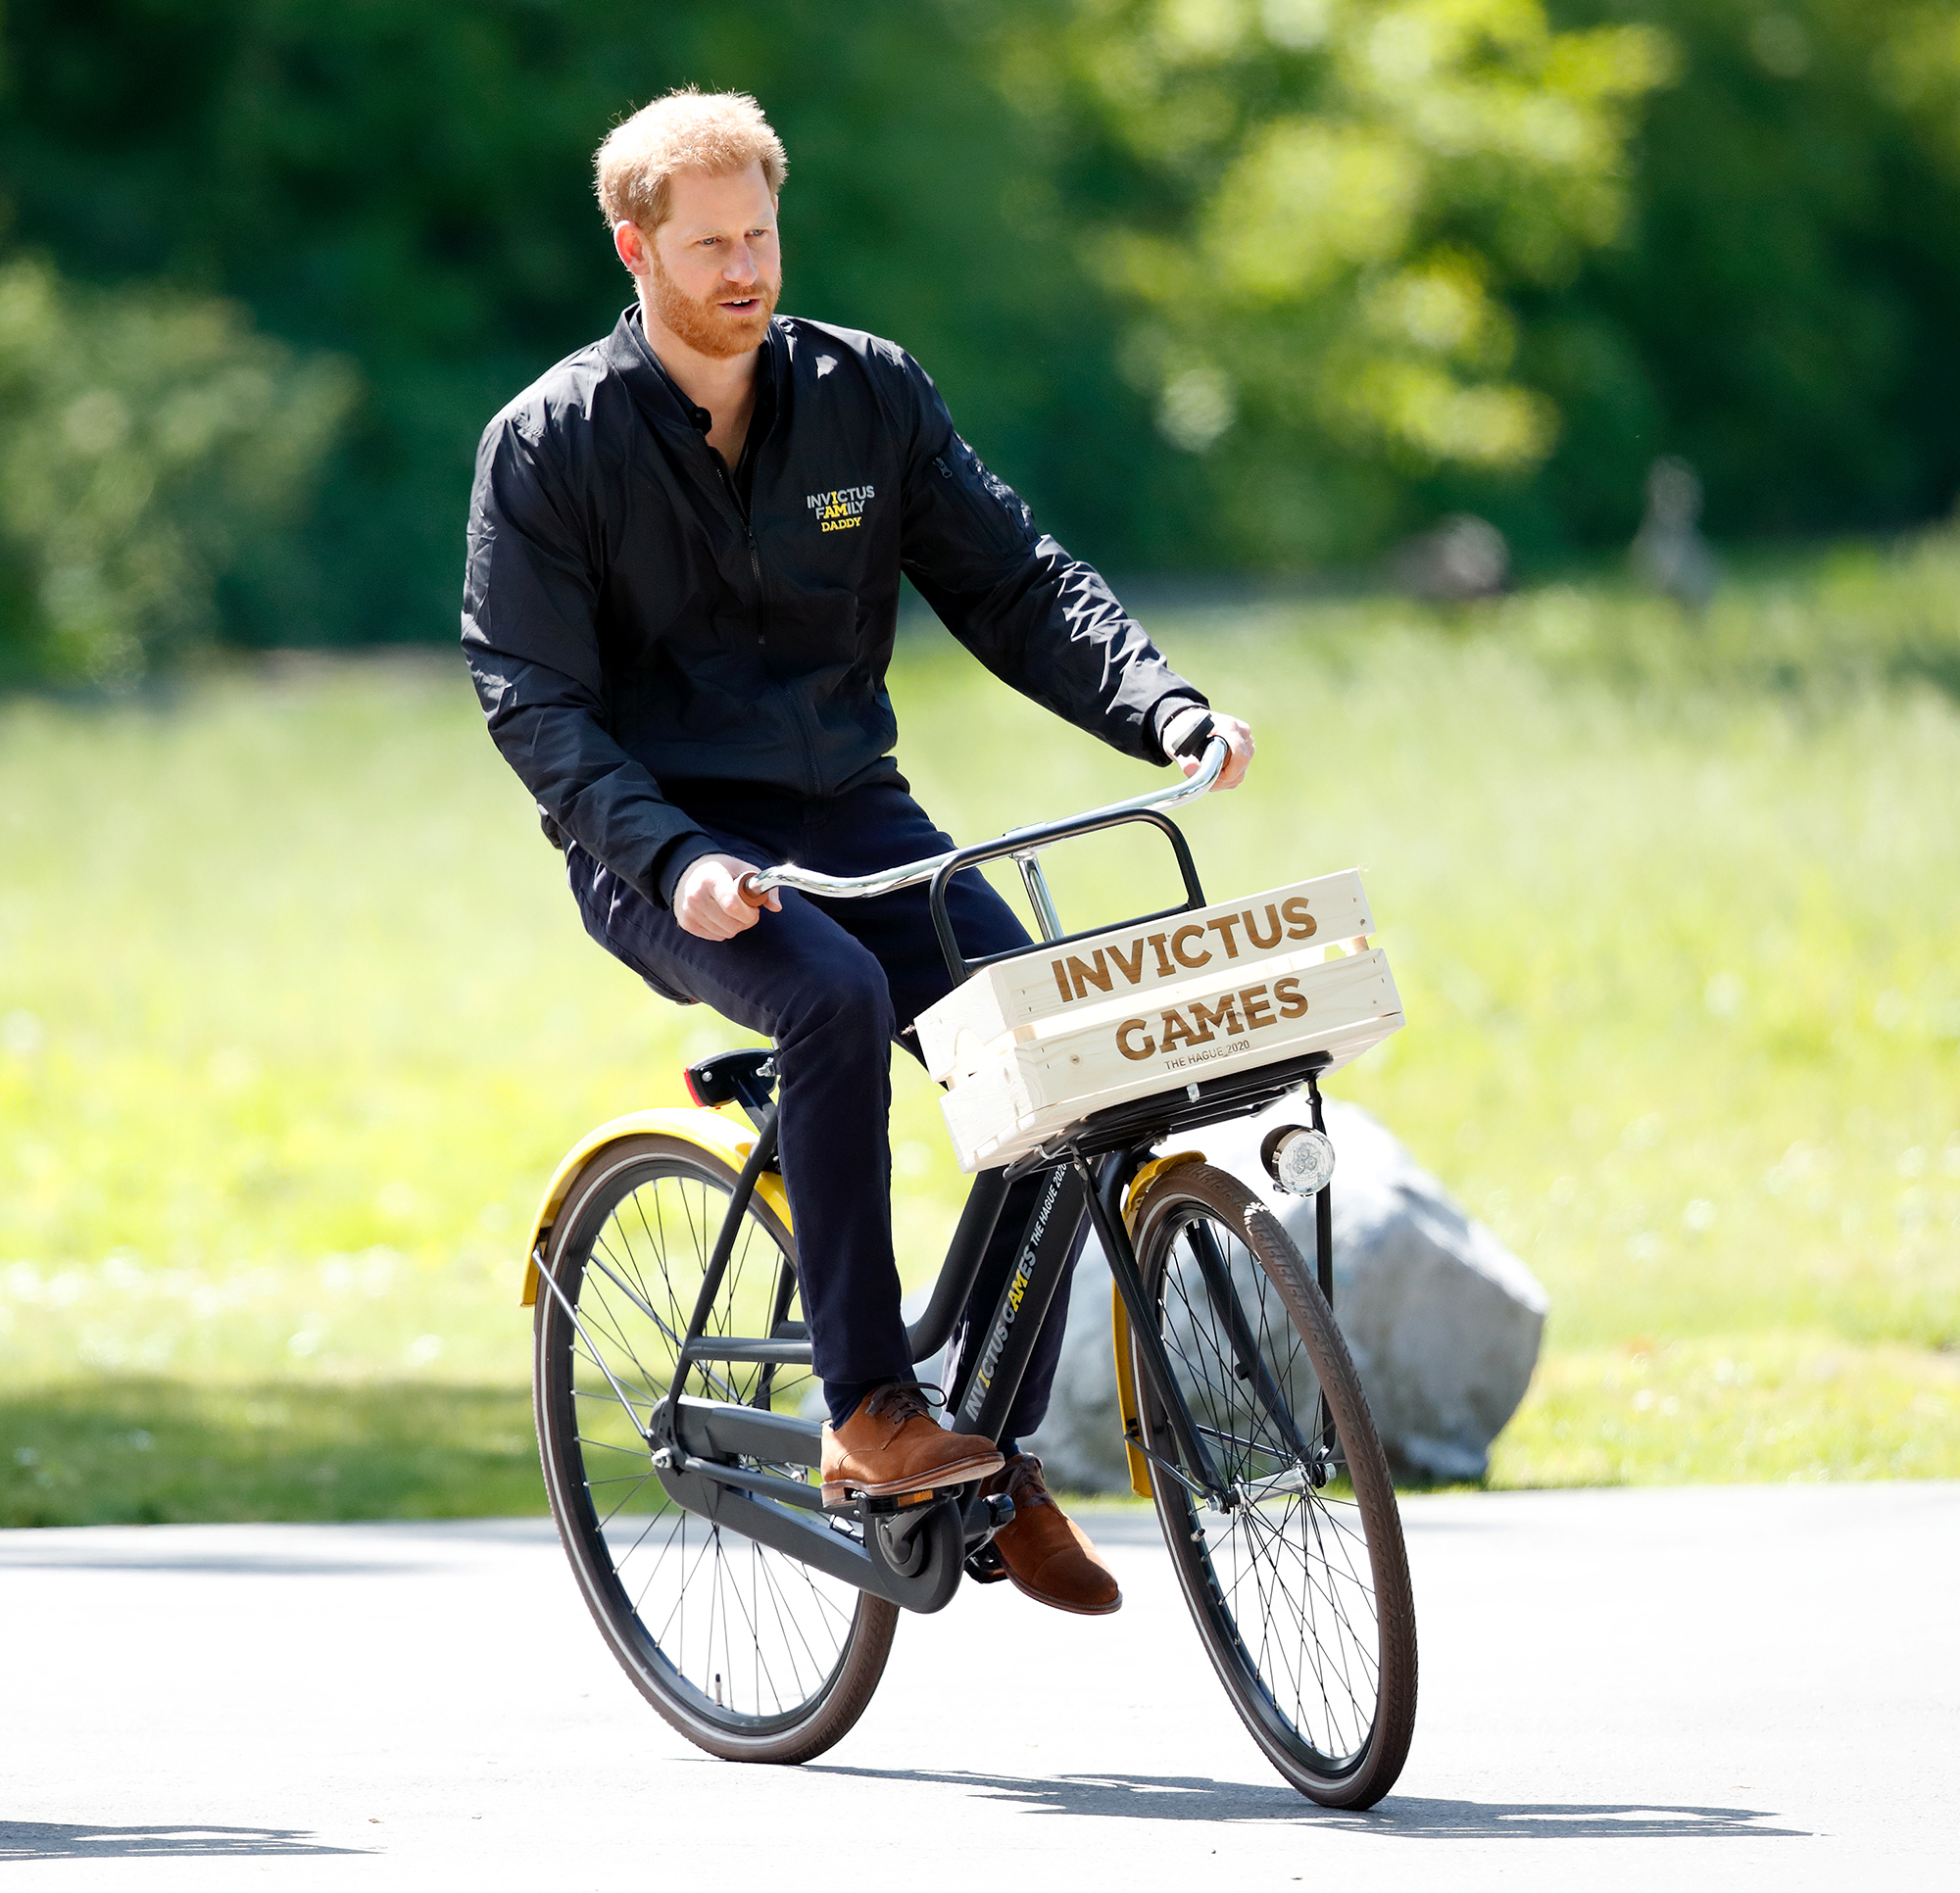 Prince Harry Bike - Prince Harry, Duke of Sussex rides a bicycle around Sportcampus Zuiderpark as part of a programme of events to mark the official launch of the Invictus Games The Hague 2020 on May 9, 2019 in The Hague, Netherlands.